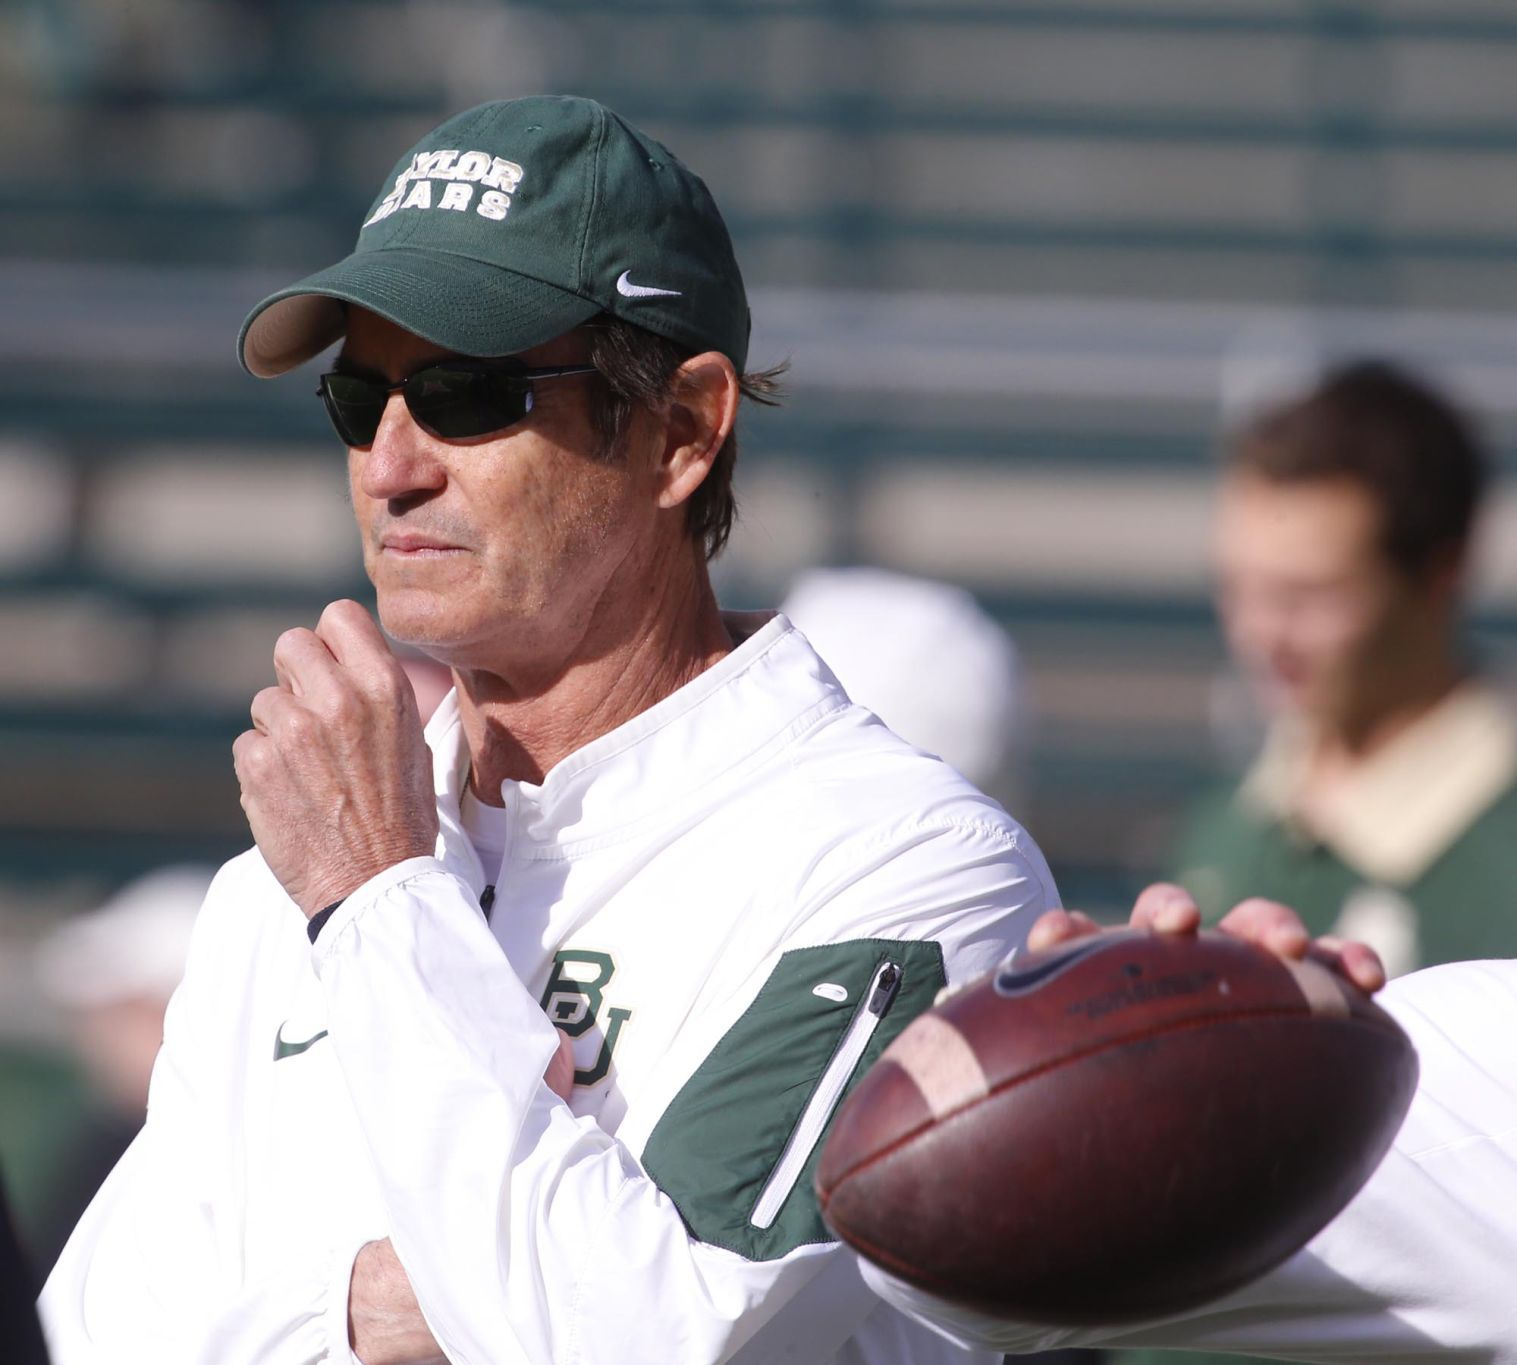 Art Briles Disgraced Baylor Coach Hired In CFL